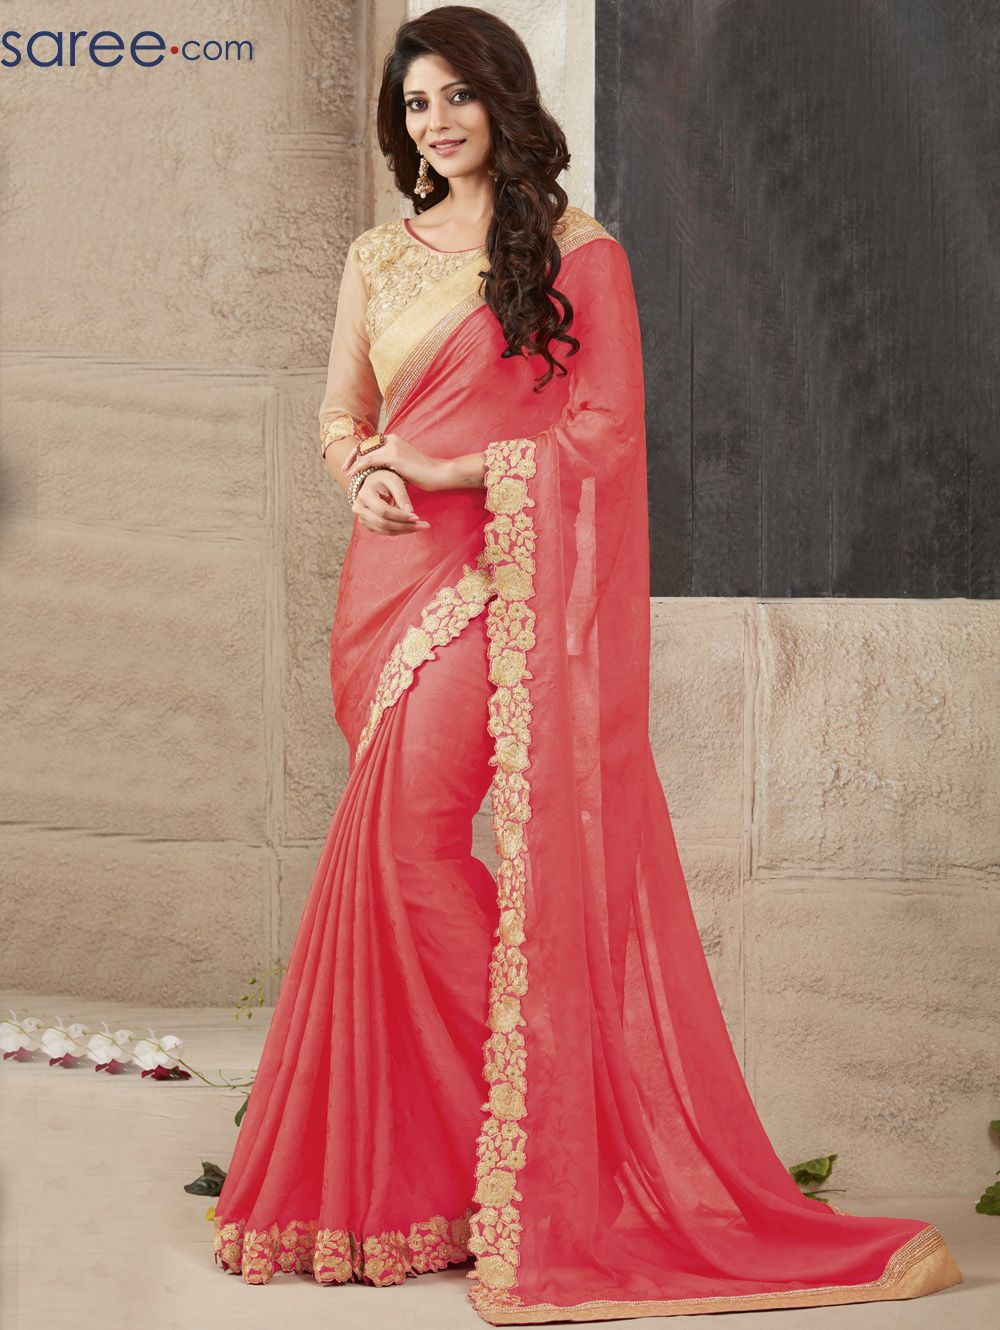 6a058aac7c PINK GEORGETTE SAREE WITH EMBROIDERY WORK. Best Traditional Indian clothing  store from the house of Asopalav. Choose from our largest collection of the  ...